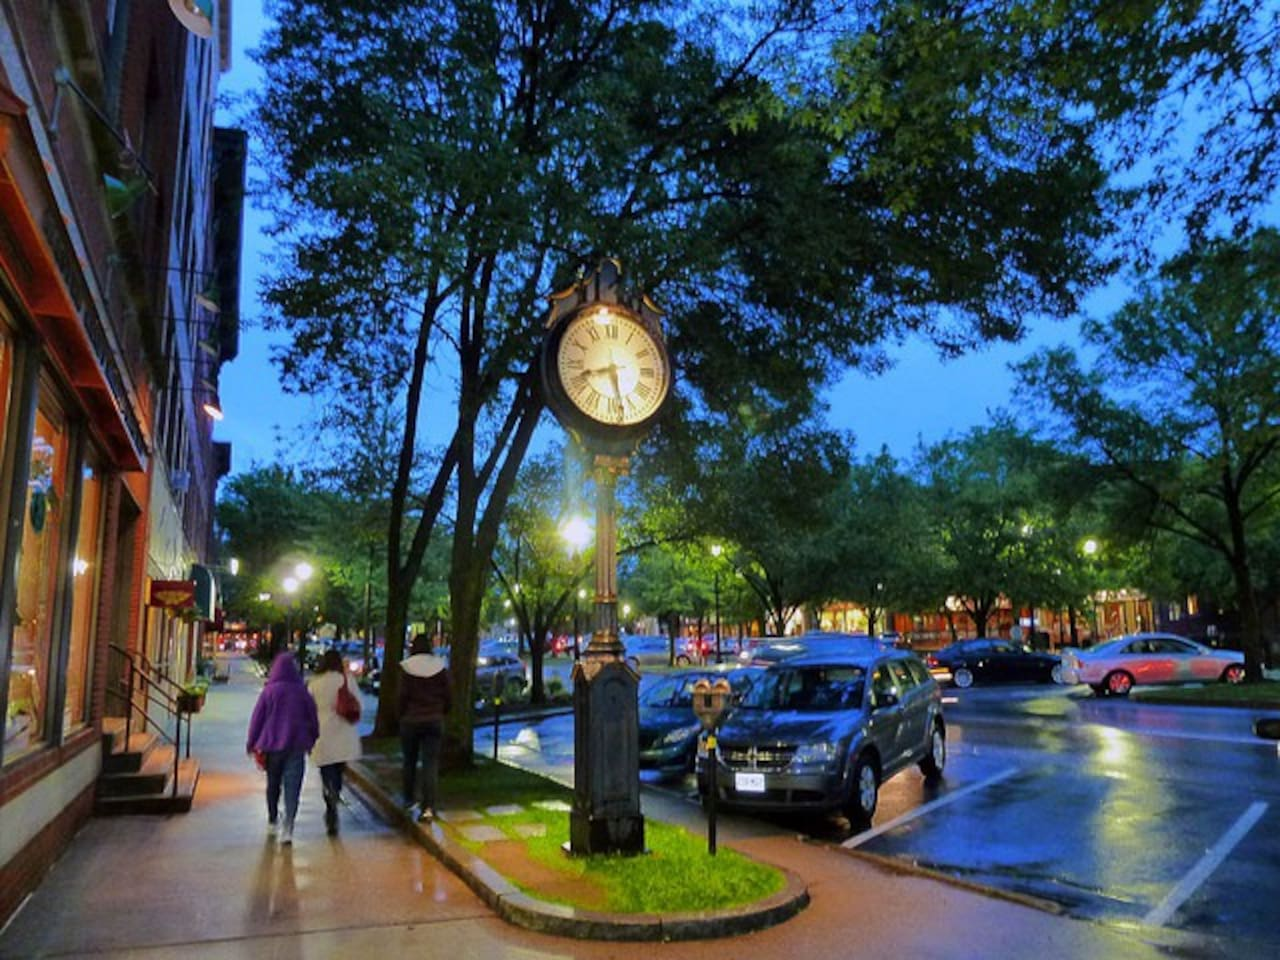 Downtown Keene offers a wide variety of shopping and restaurants.